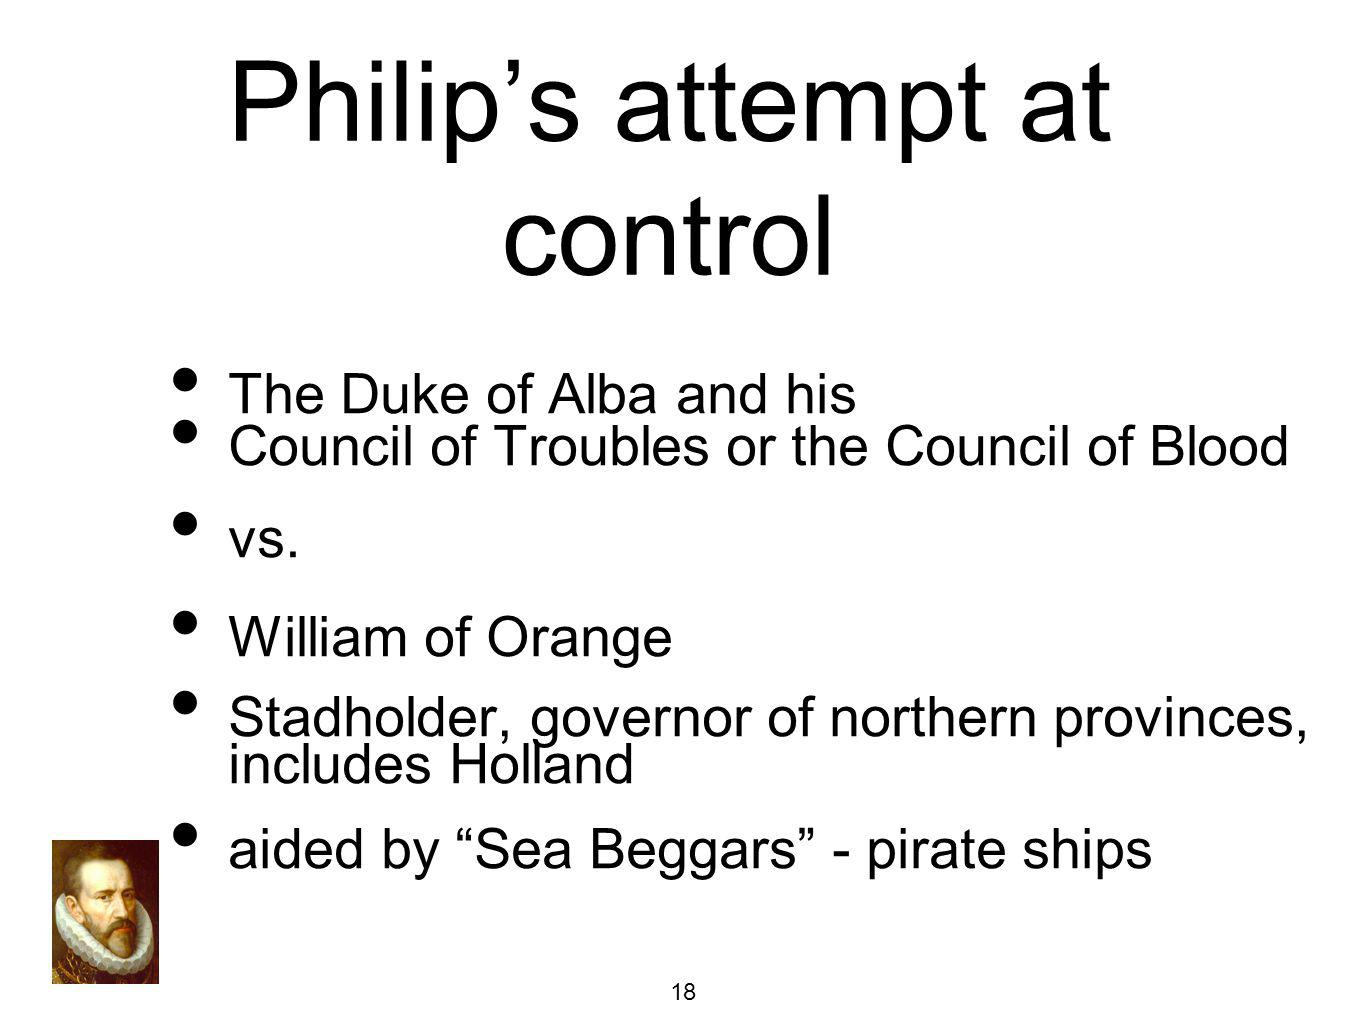 Philip's attempt at control